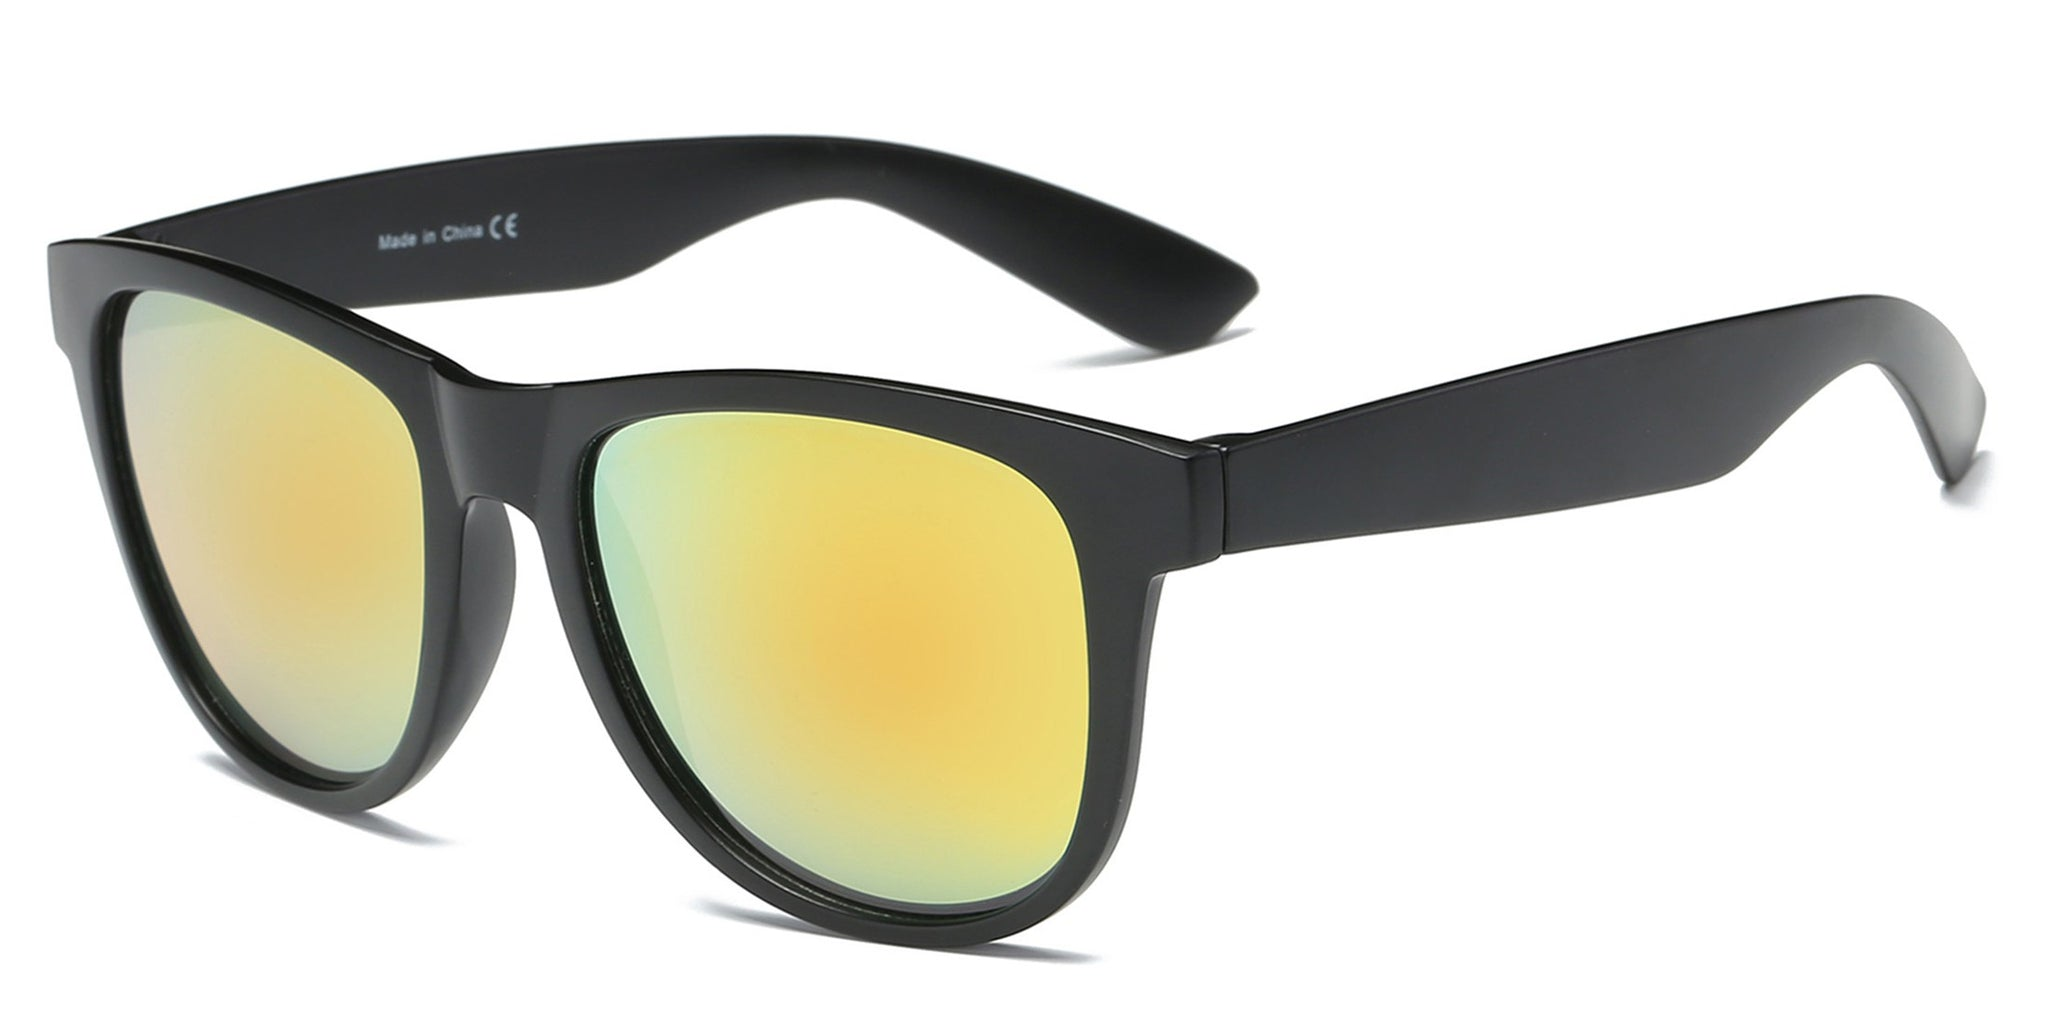 Salt Square Mirrored Sunglasses